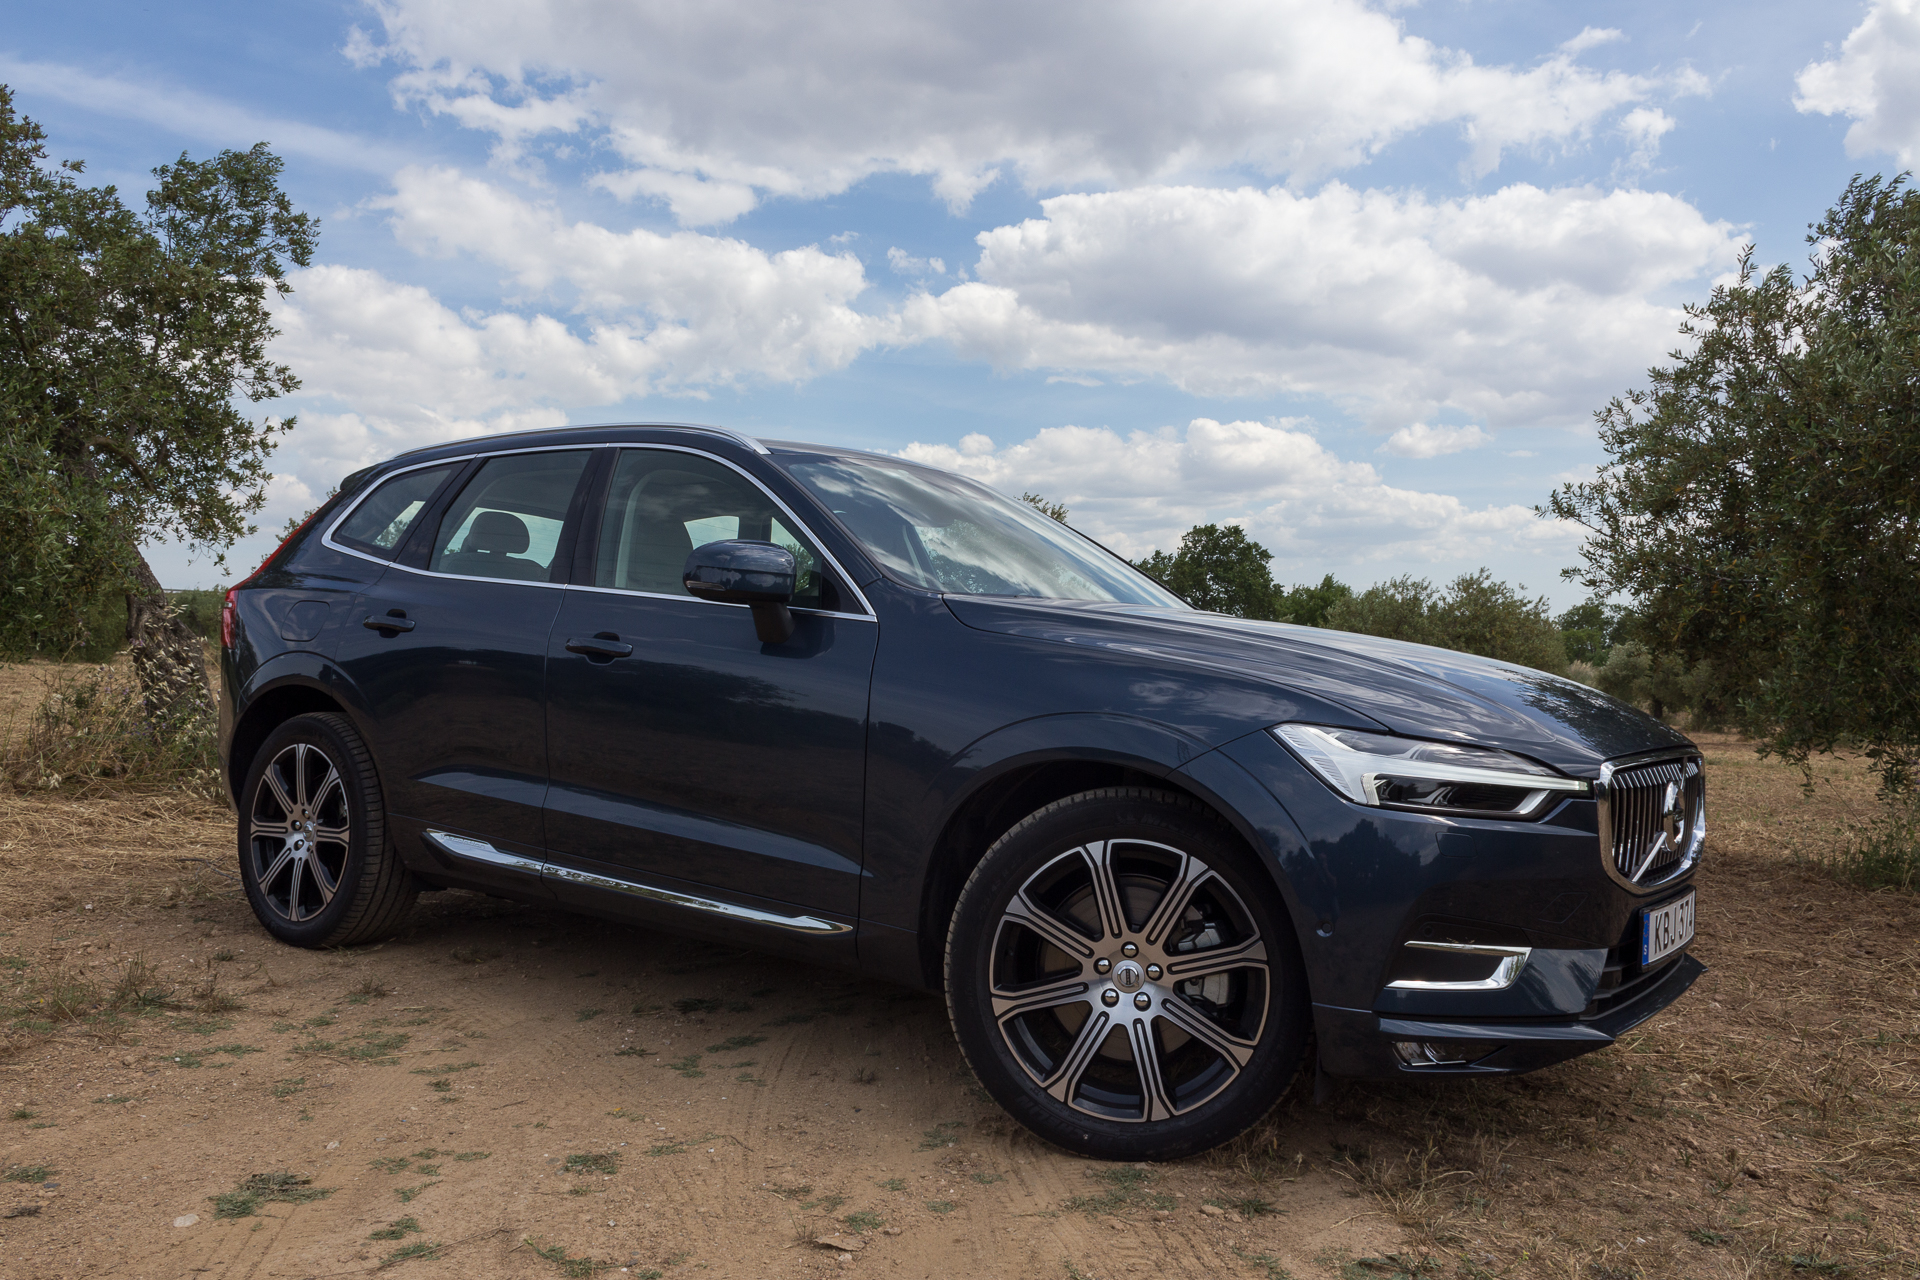 2018 Volvo XC60 T6 AWD first drive: a timely reboot